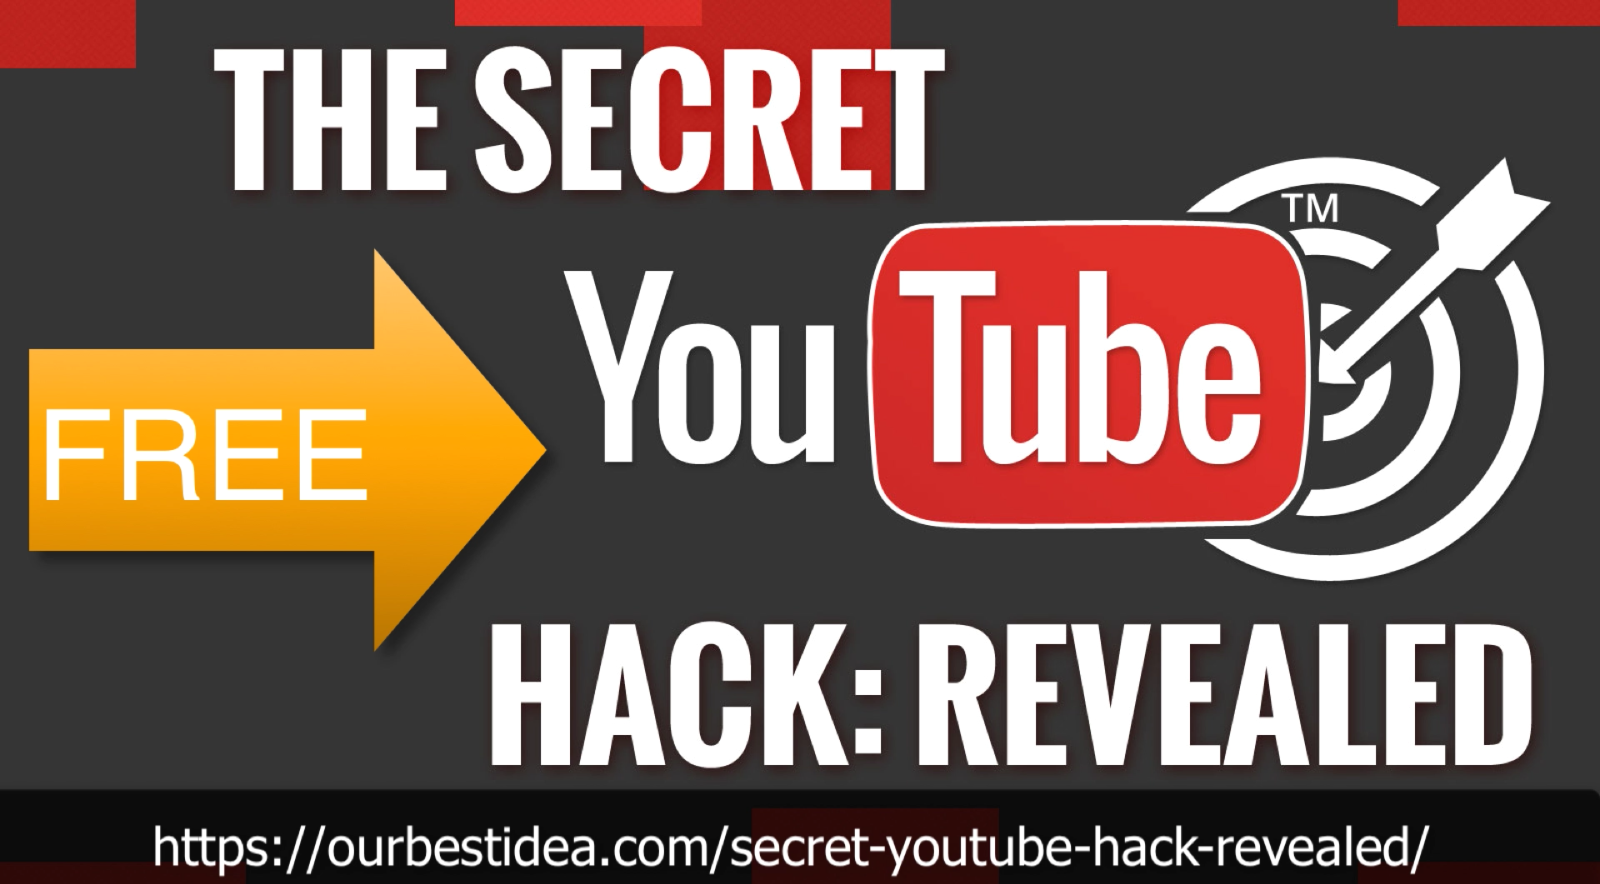 Secret Youtube Hack REVEALED